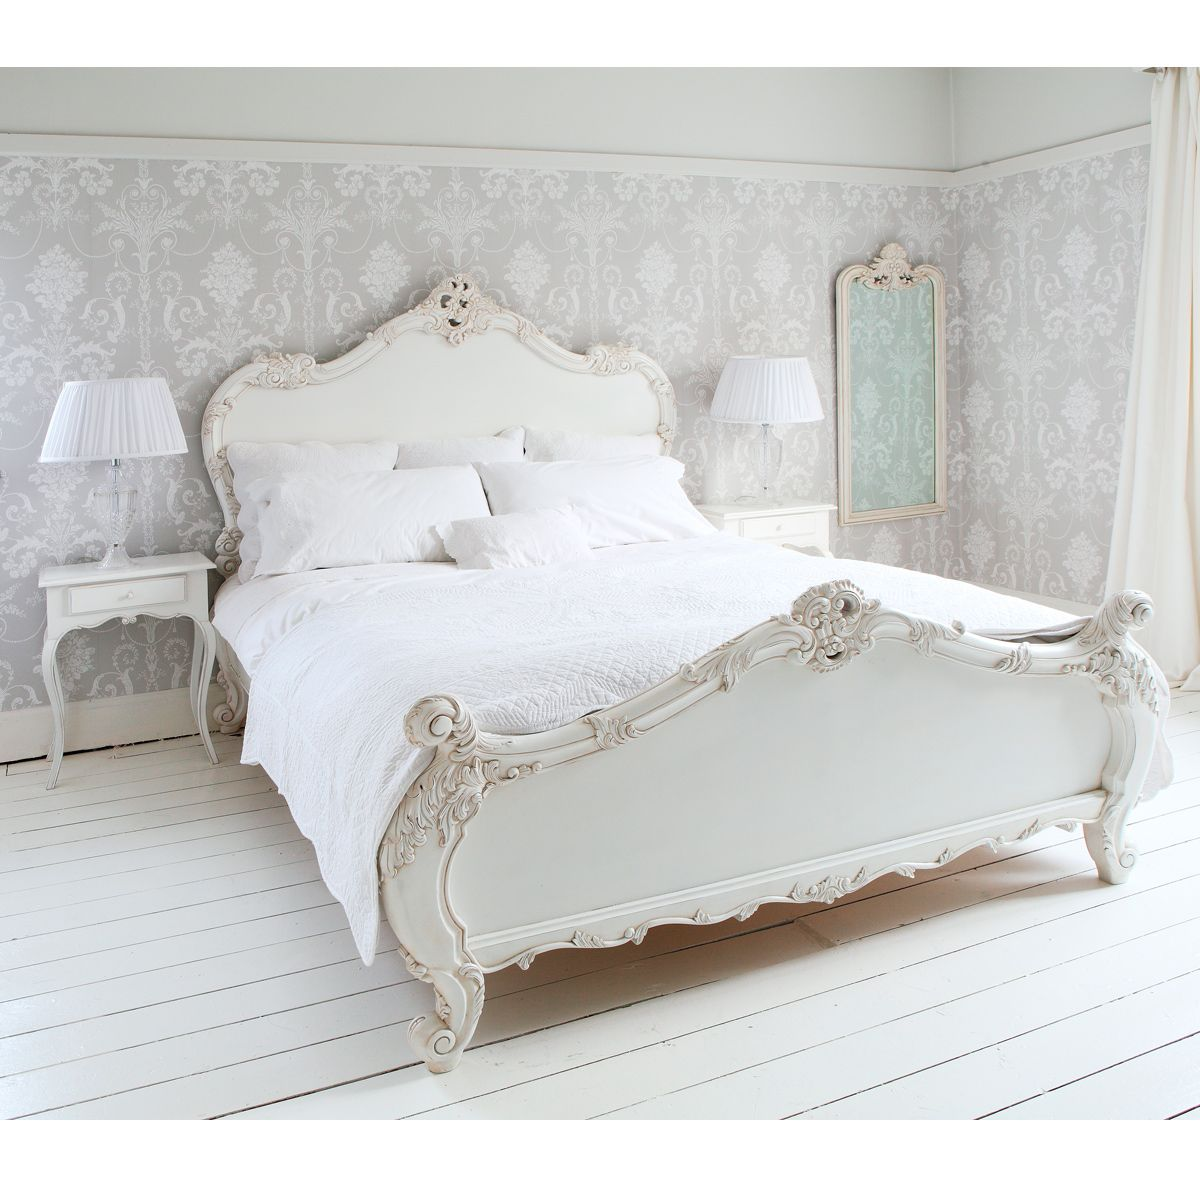 provencal sassy white french bed (double) | french bed, bed